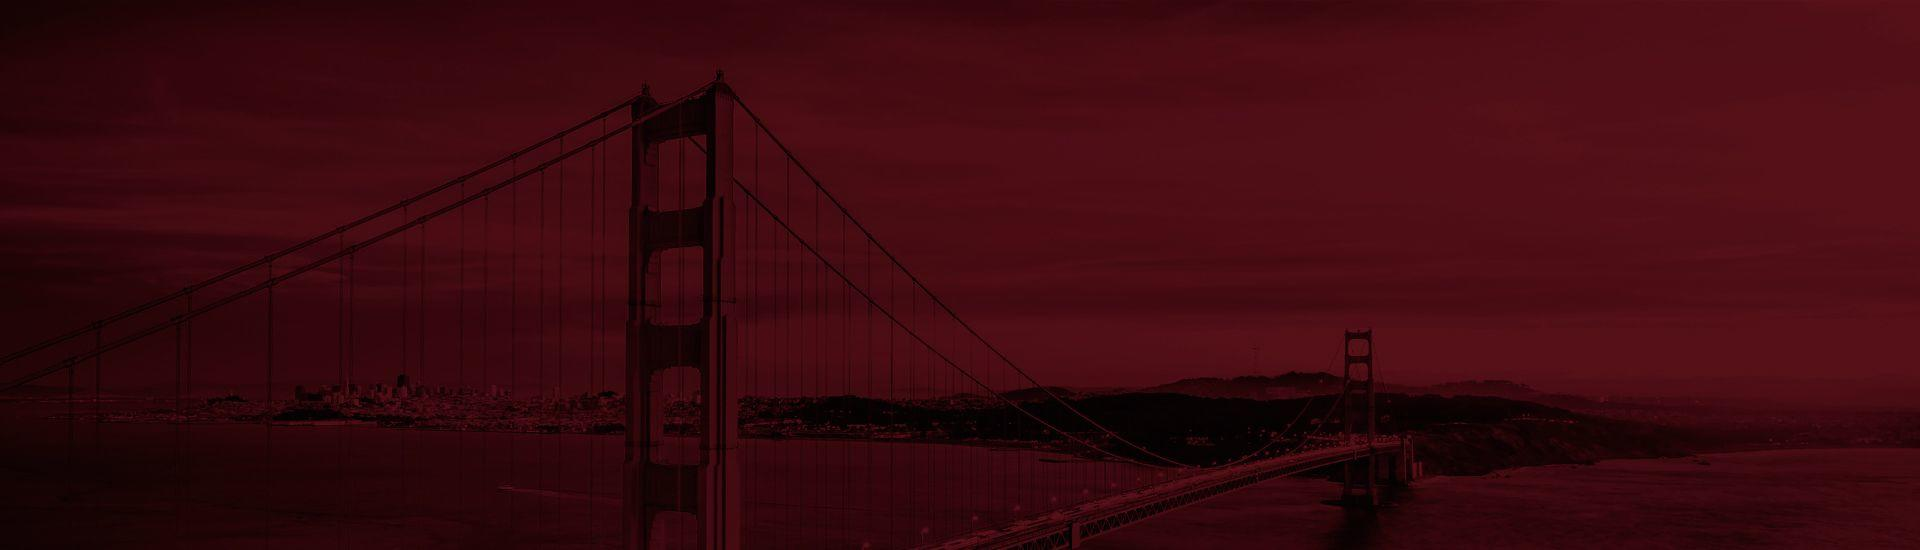 Why should you attend the Mobile Growth Summit San Francisco?